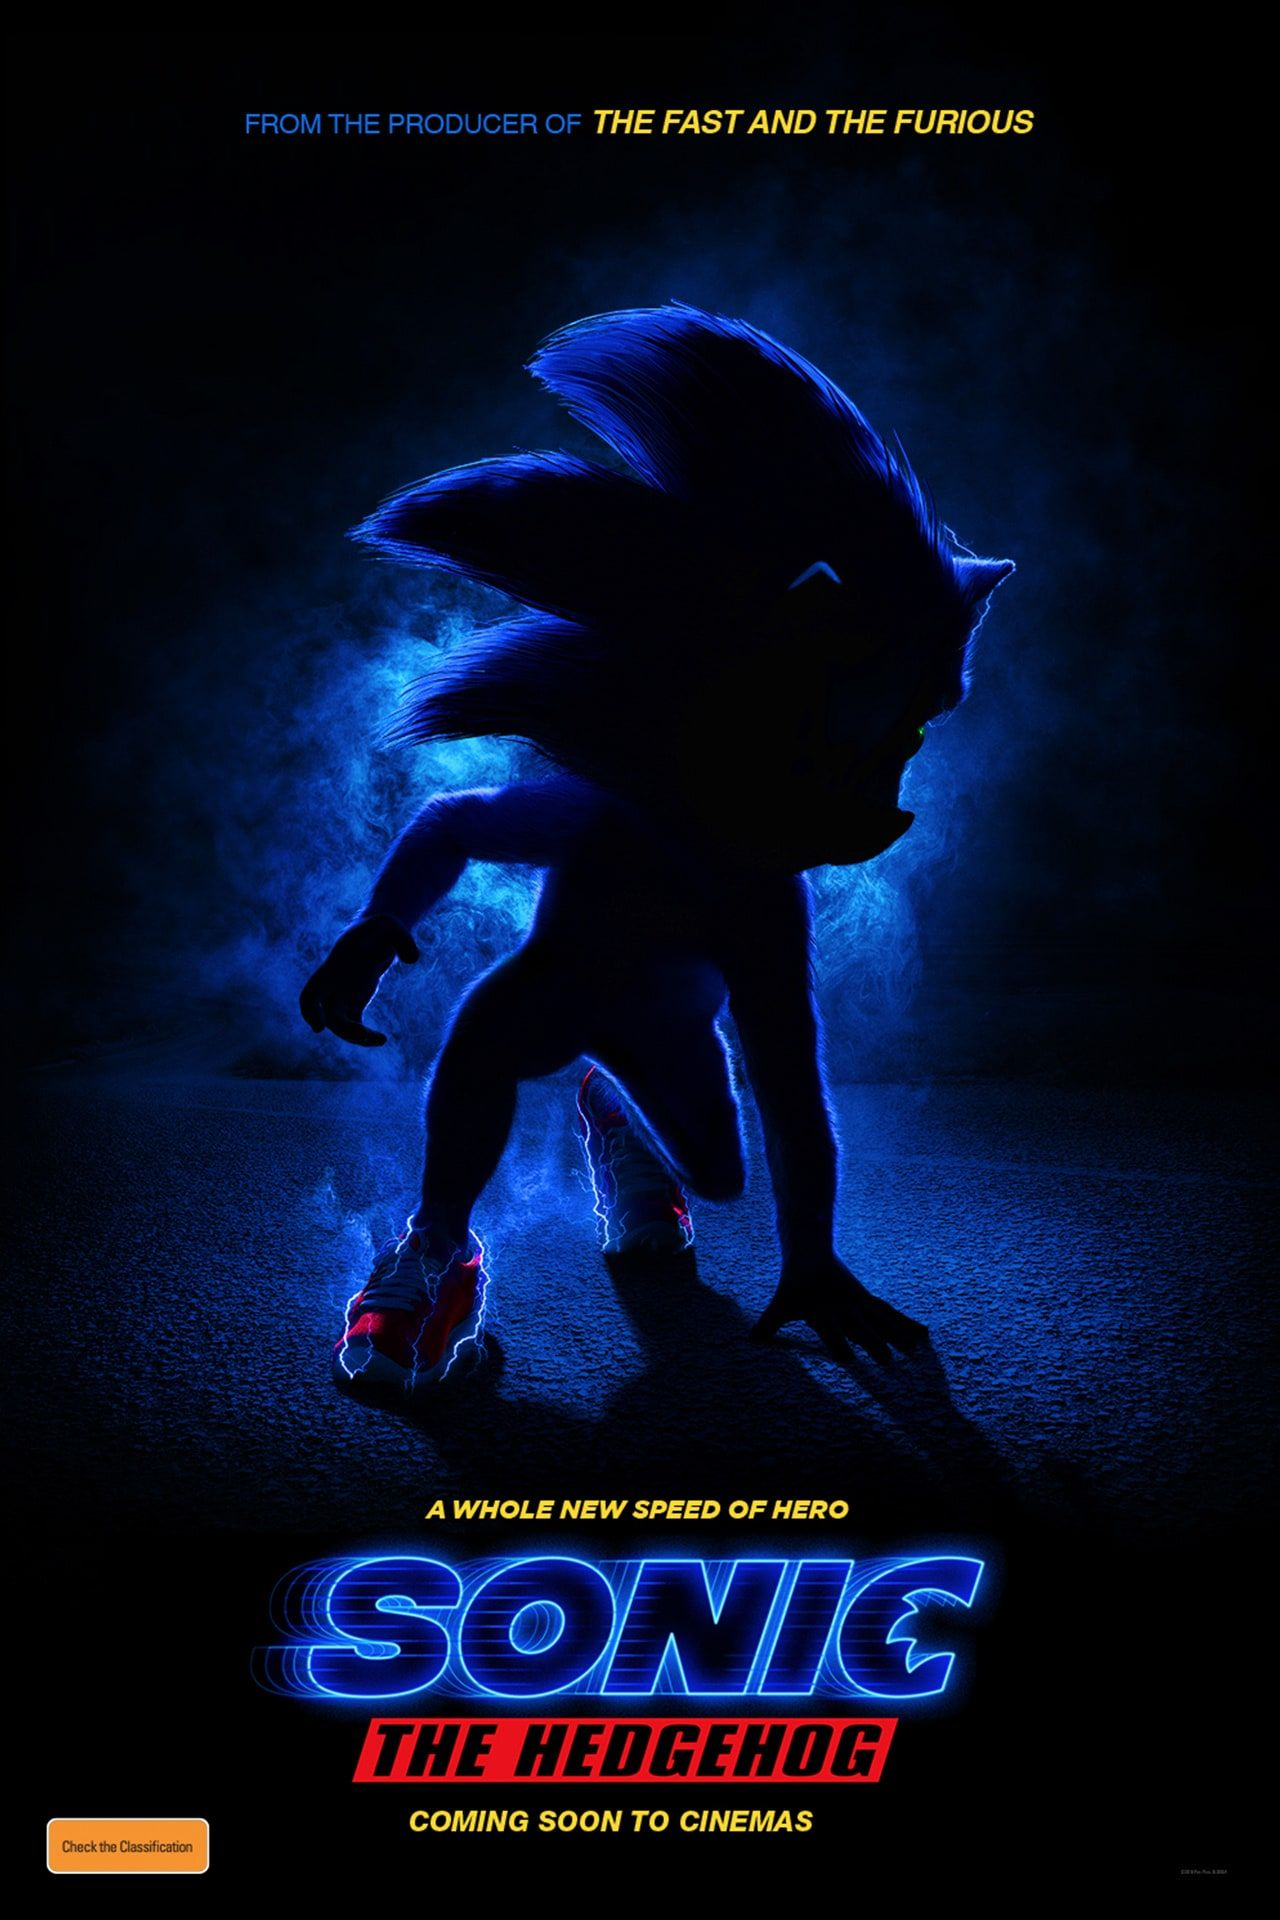 Download The Producers Sub Indo : download, producers, Nonton, Sonic, Hedgehog, (2020), Subtitle, Indonesia, Movie,, Hedgehog,, Movies, Online